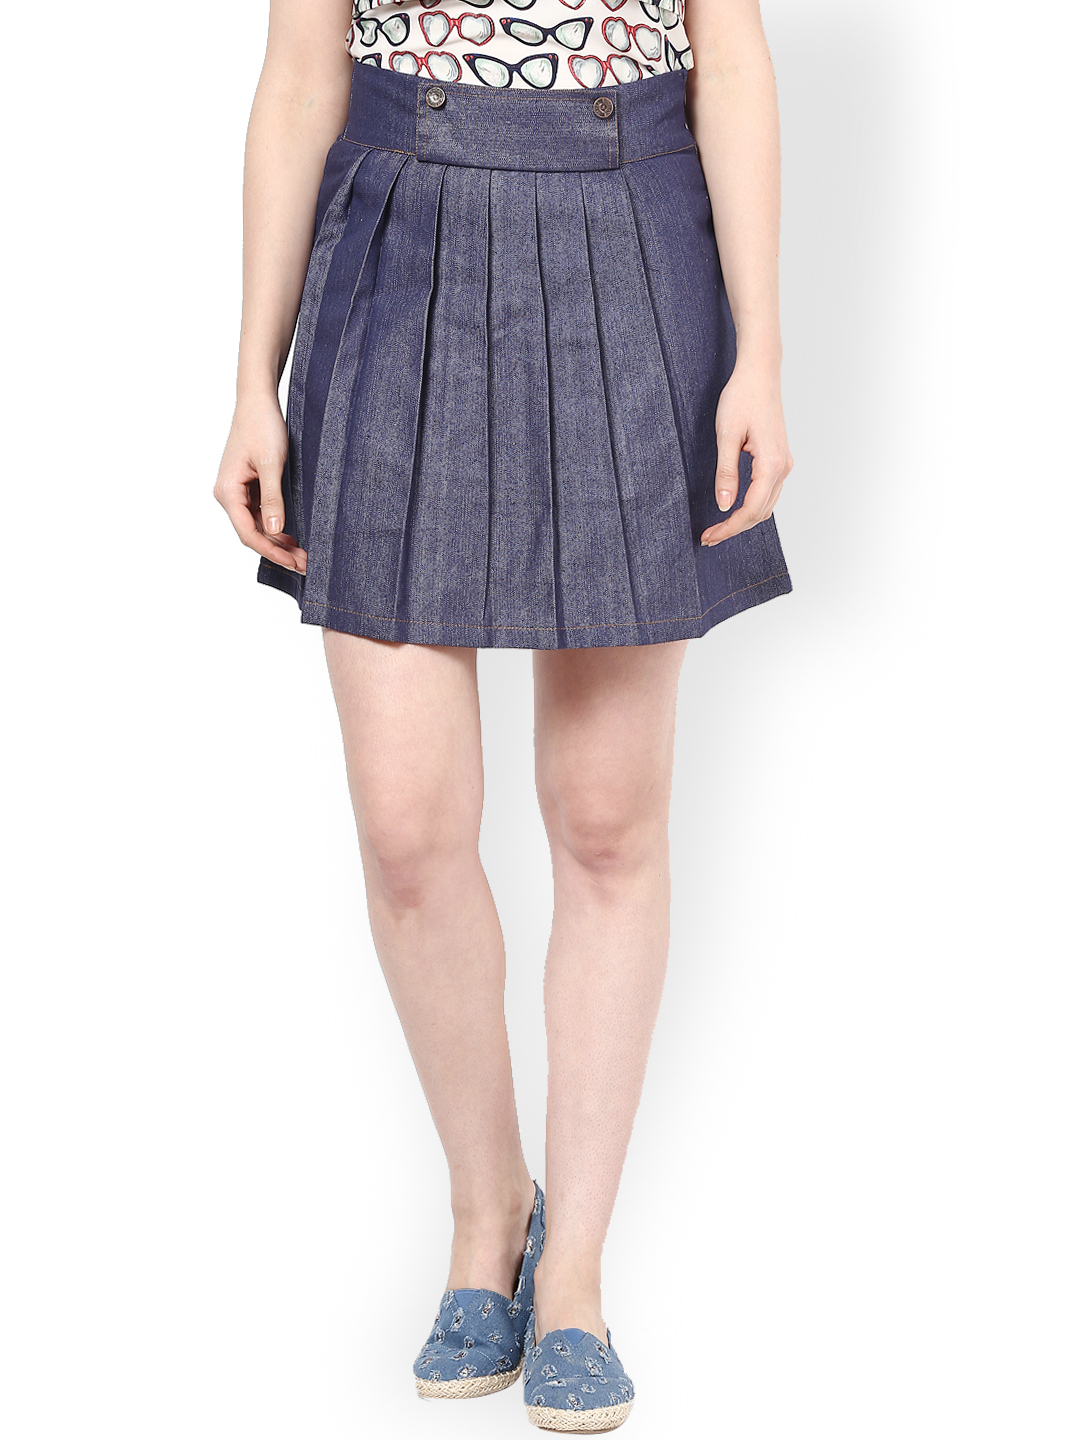 Athena Blue Denim A-Line Skirt Price in India